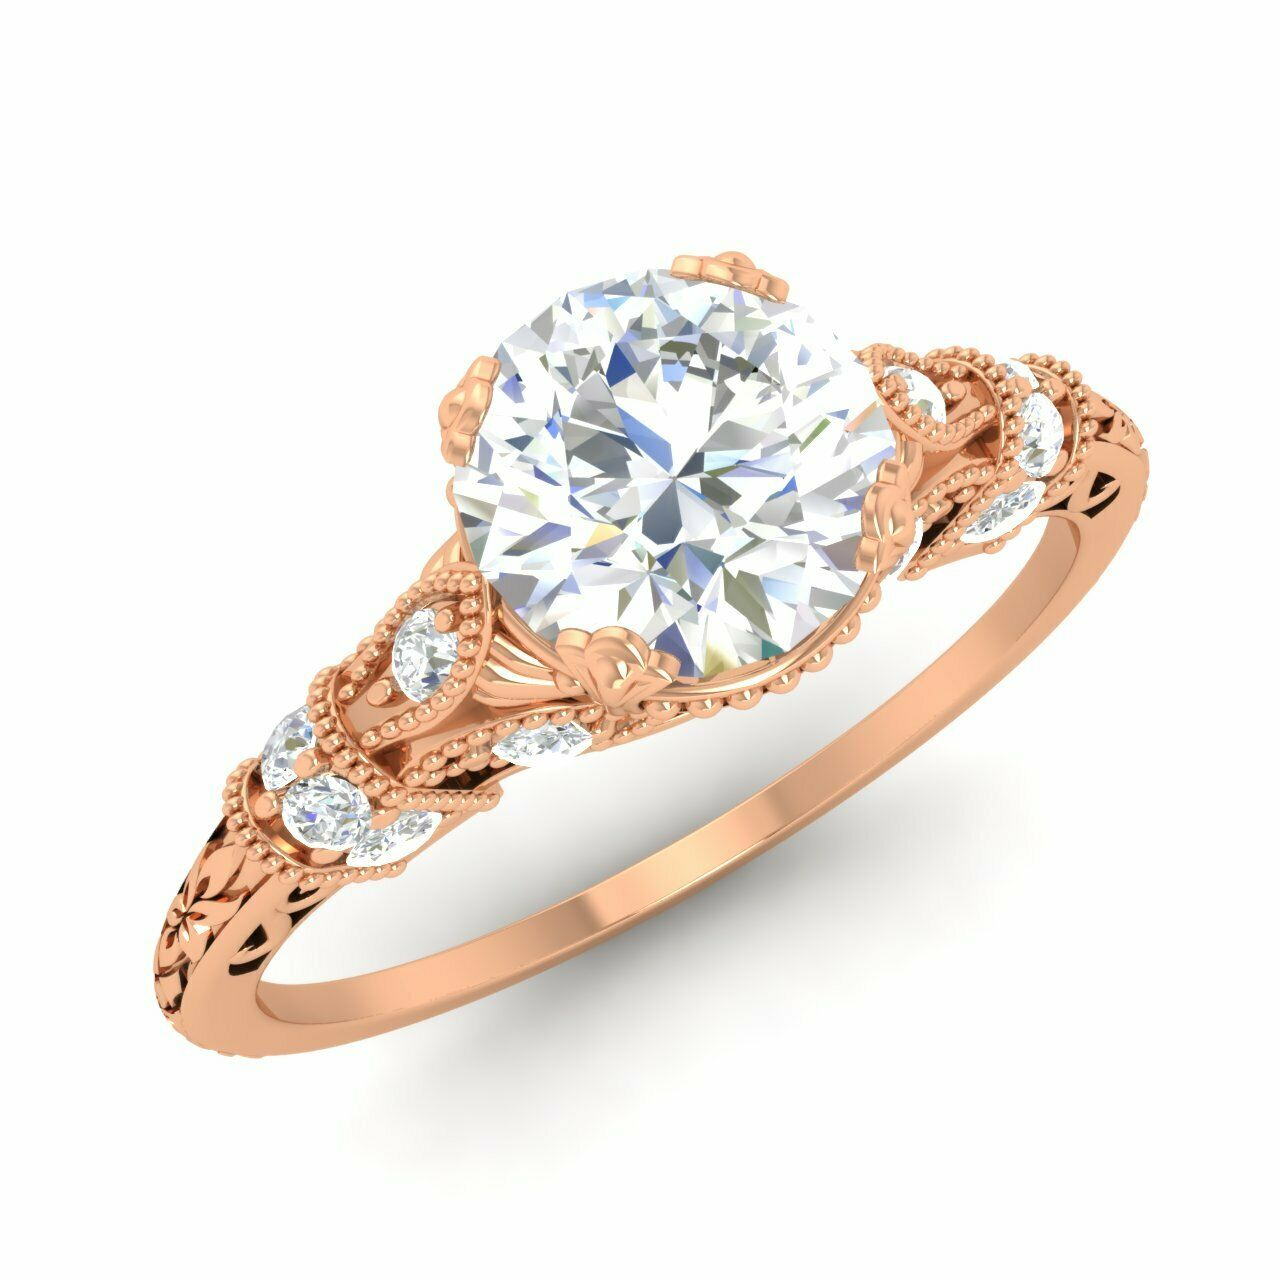 1.11 Ctw Natural Diamond Vintage Filigree Style Engagement Ring 14k Rose Gold